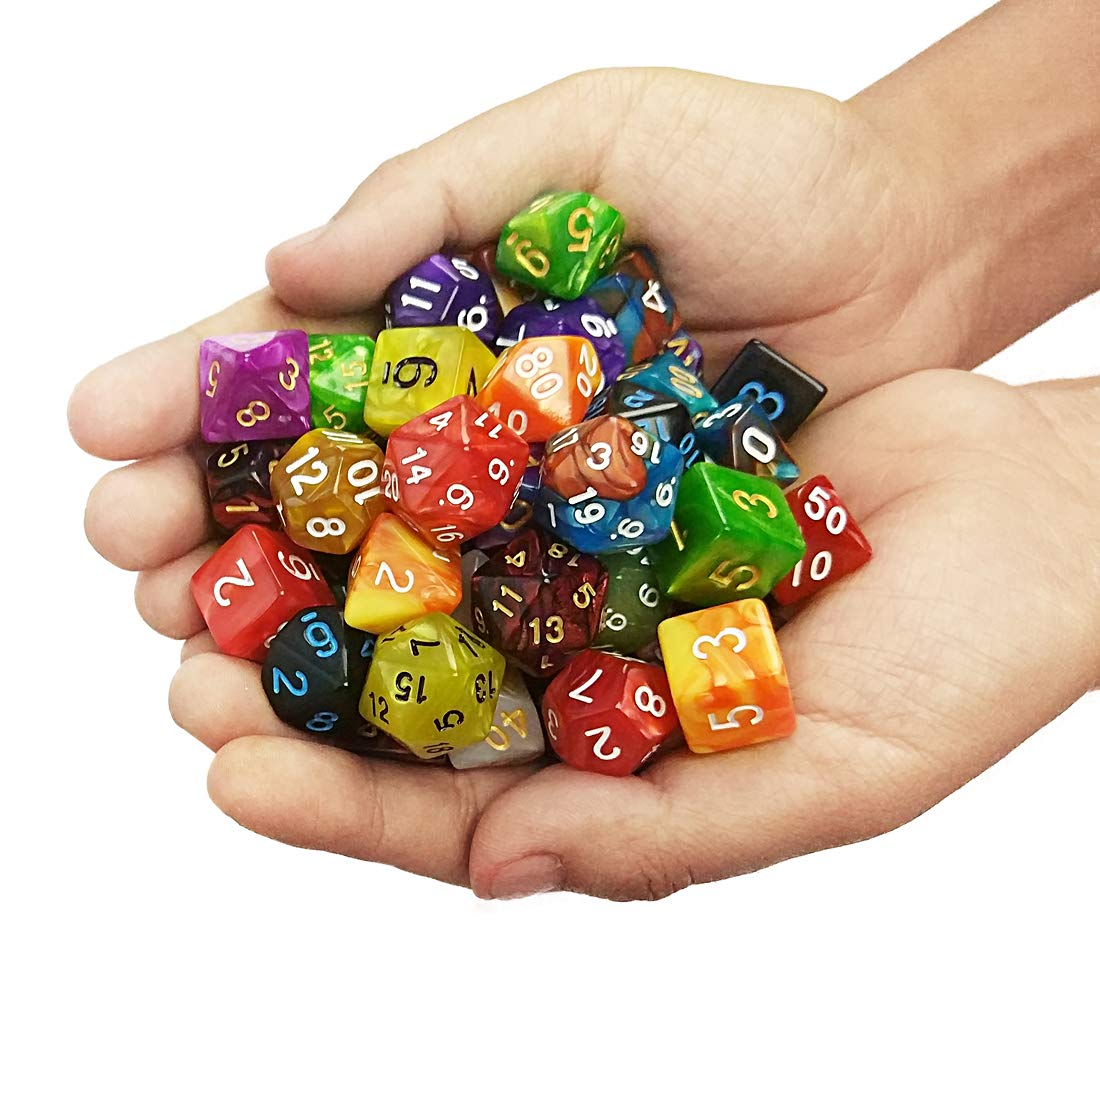 QMAY DND Dice Set, 140PCS Polyhedral Game Dice, 20 Color Double-Colors DND Dice Role Playing Dice for Dungeon and Dragons DND RPG MTG Table Games Dice D4 D8 D10 D12 D20 by QMAY (Image #6)